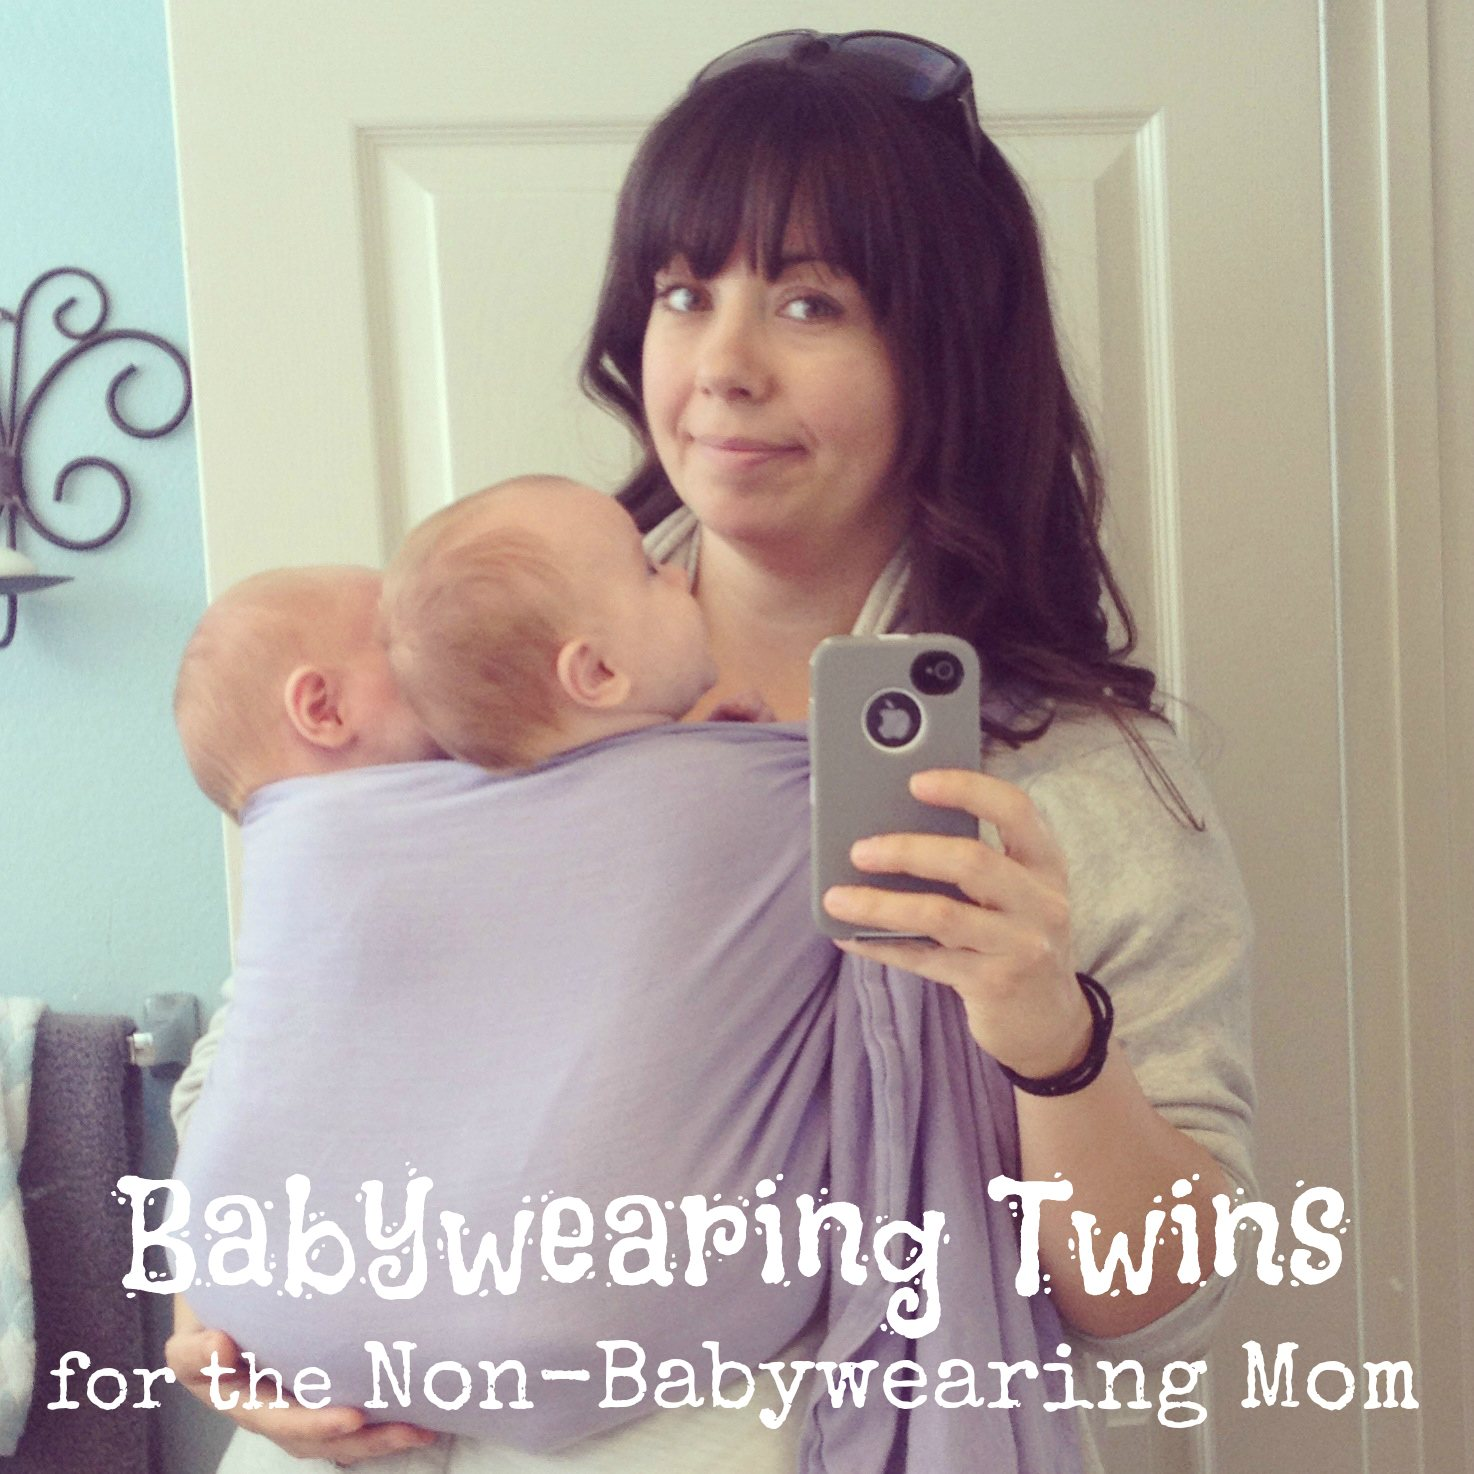 Babywearing Twins for the Non-Babywearing Mom